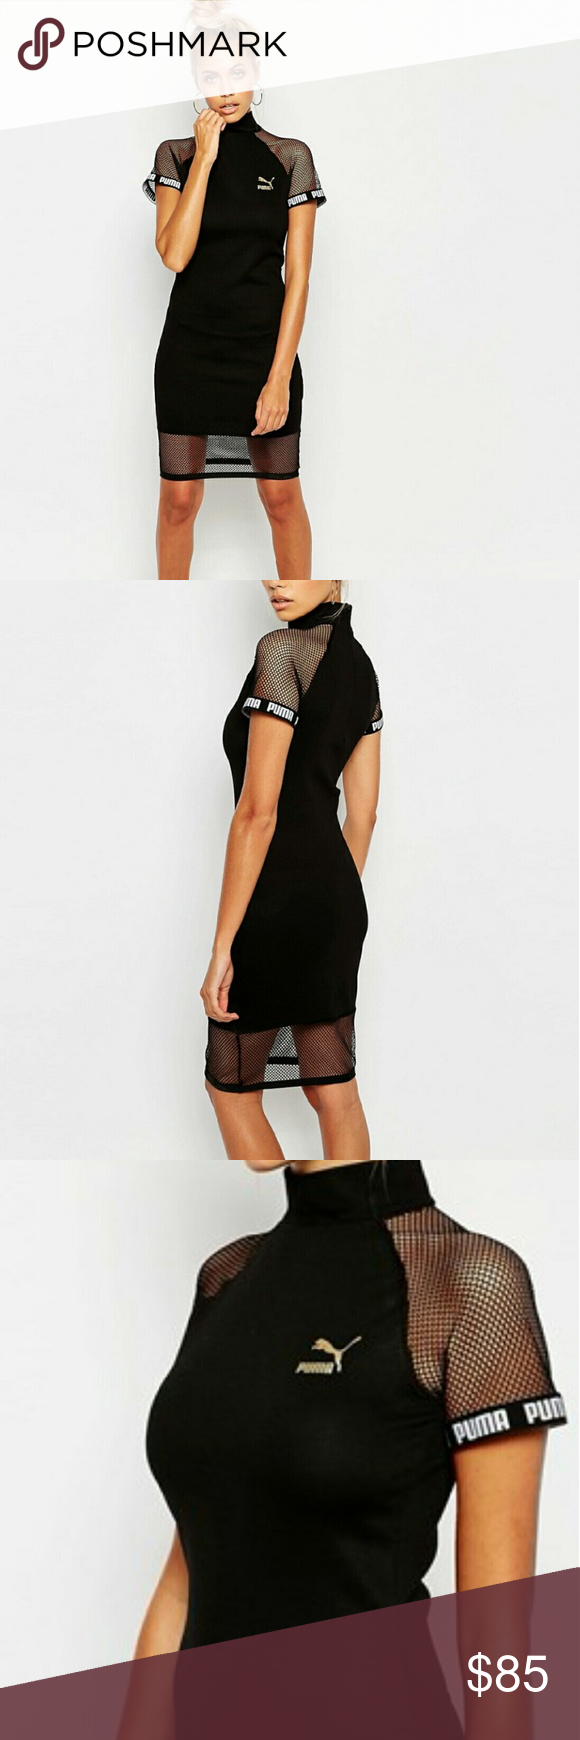 Puma Bodycon Dress High neck, with mesh in all the right places. Sold Out. puma  Dresses